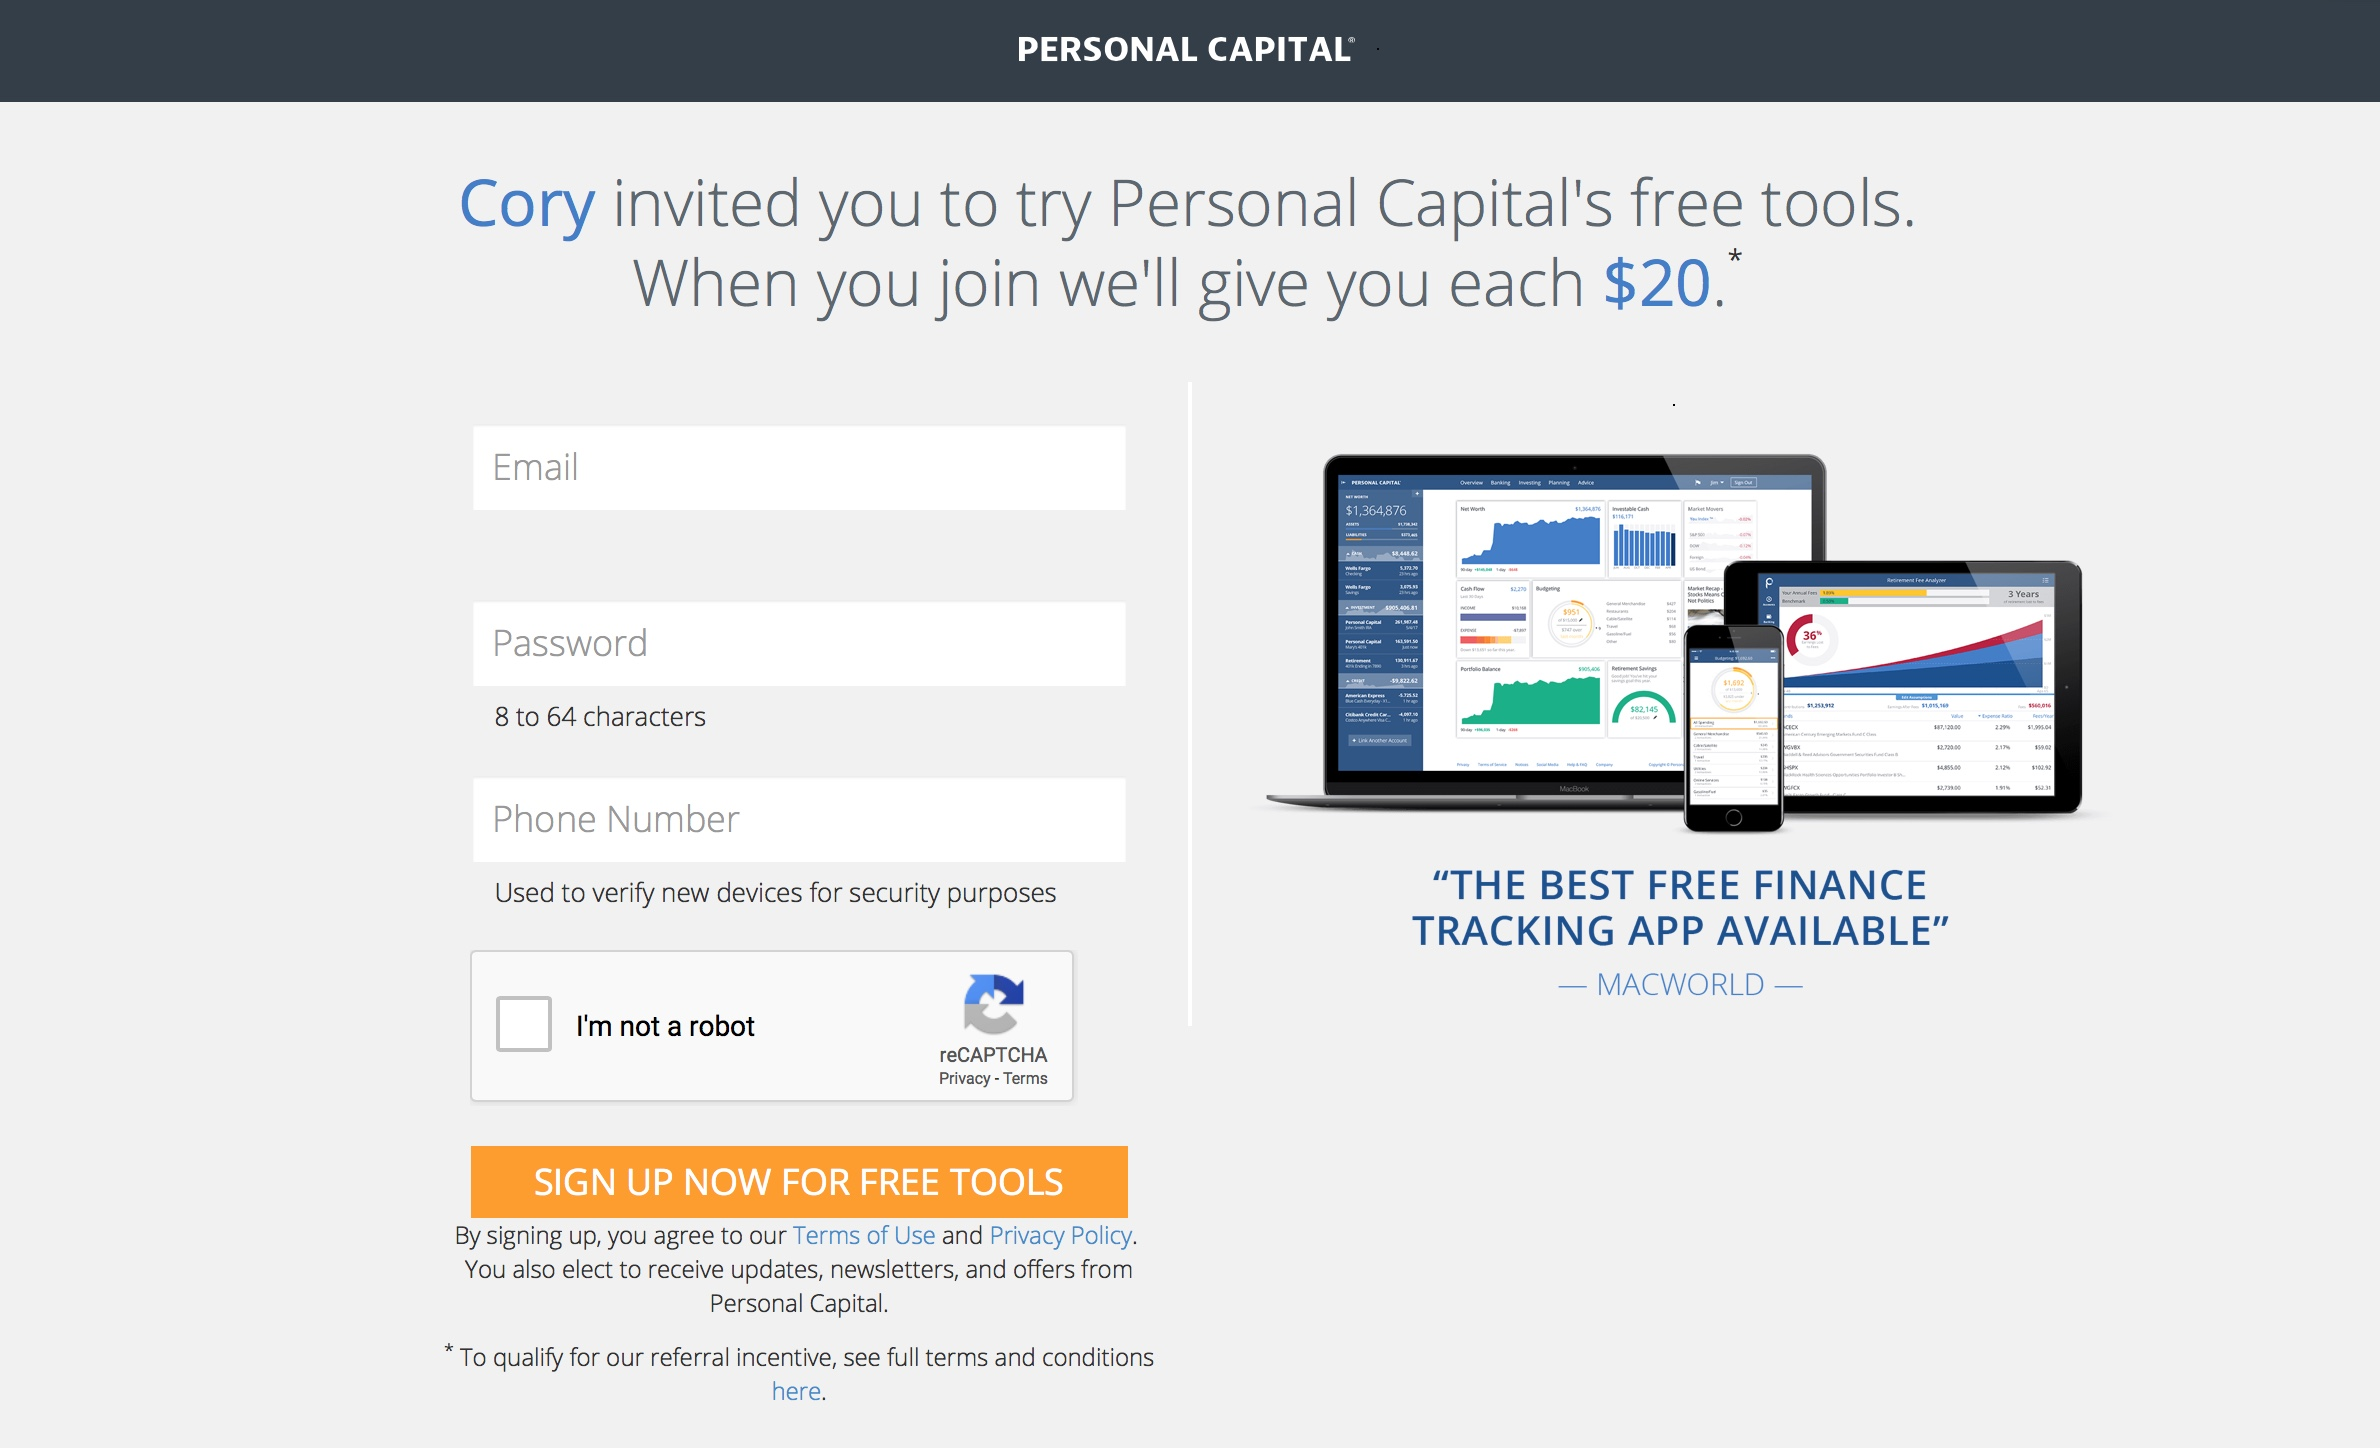 Join Personal Capital for Free and Get $20 Amazon Gift Card